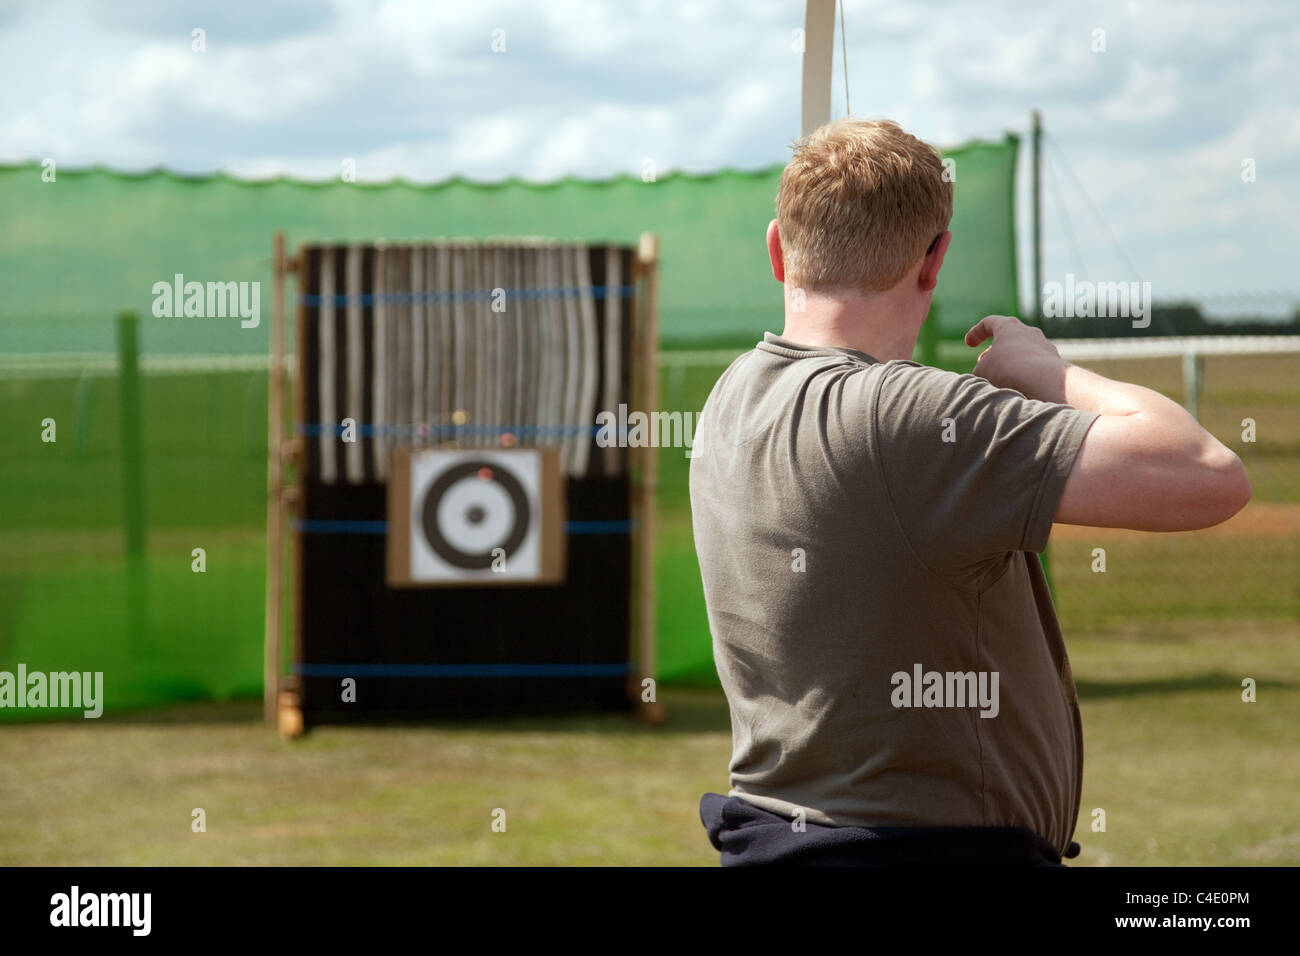 An overweight man firing at a target with a bow and arrow - Stock Image